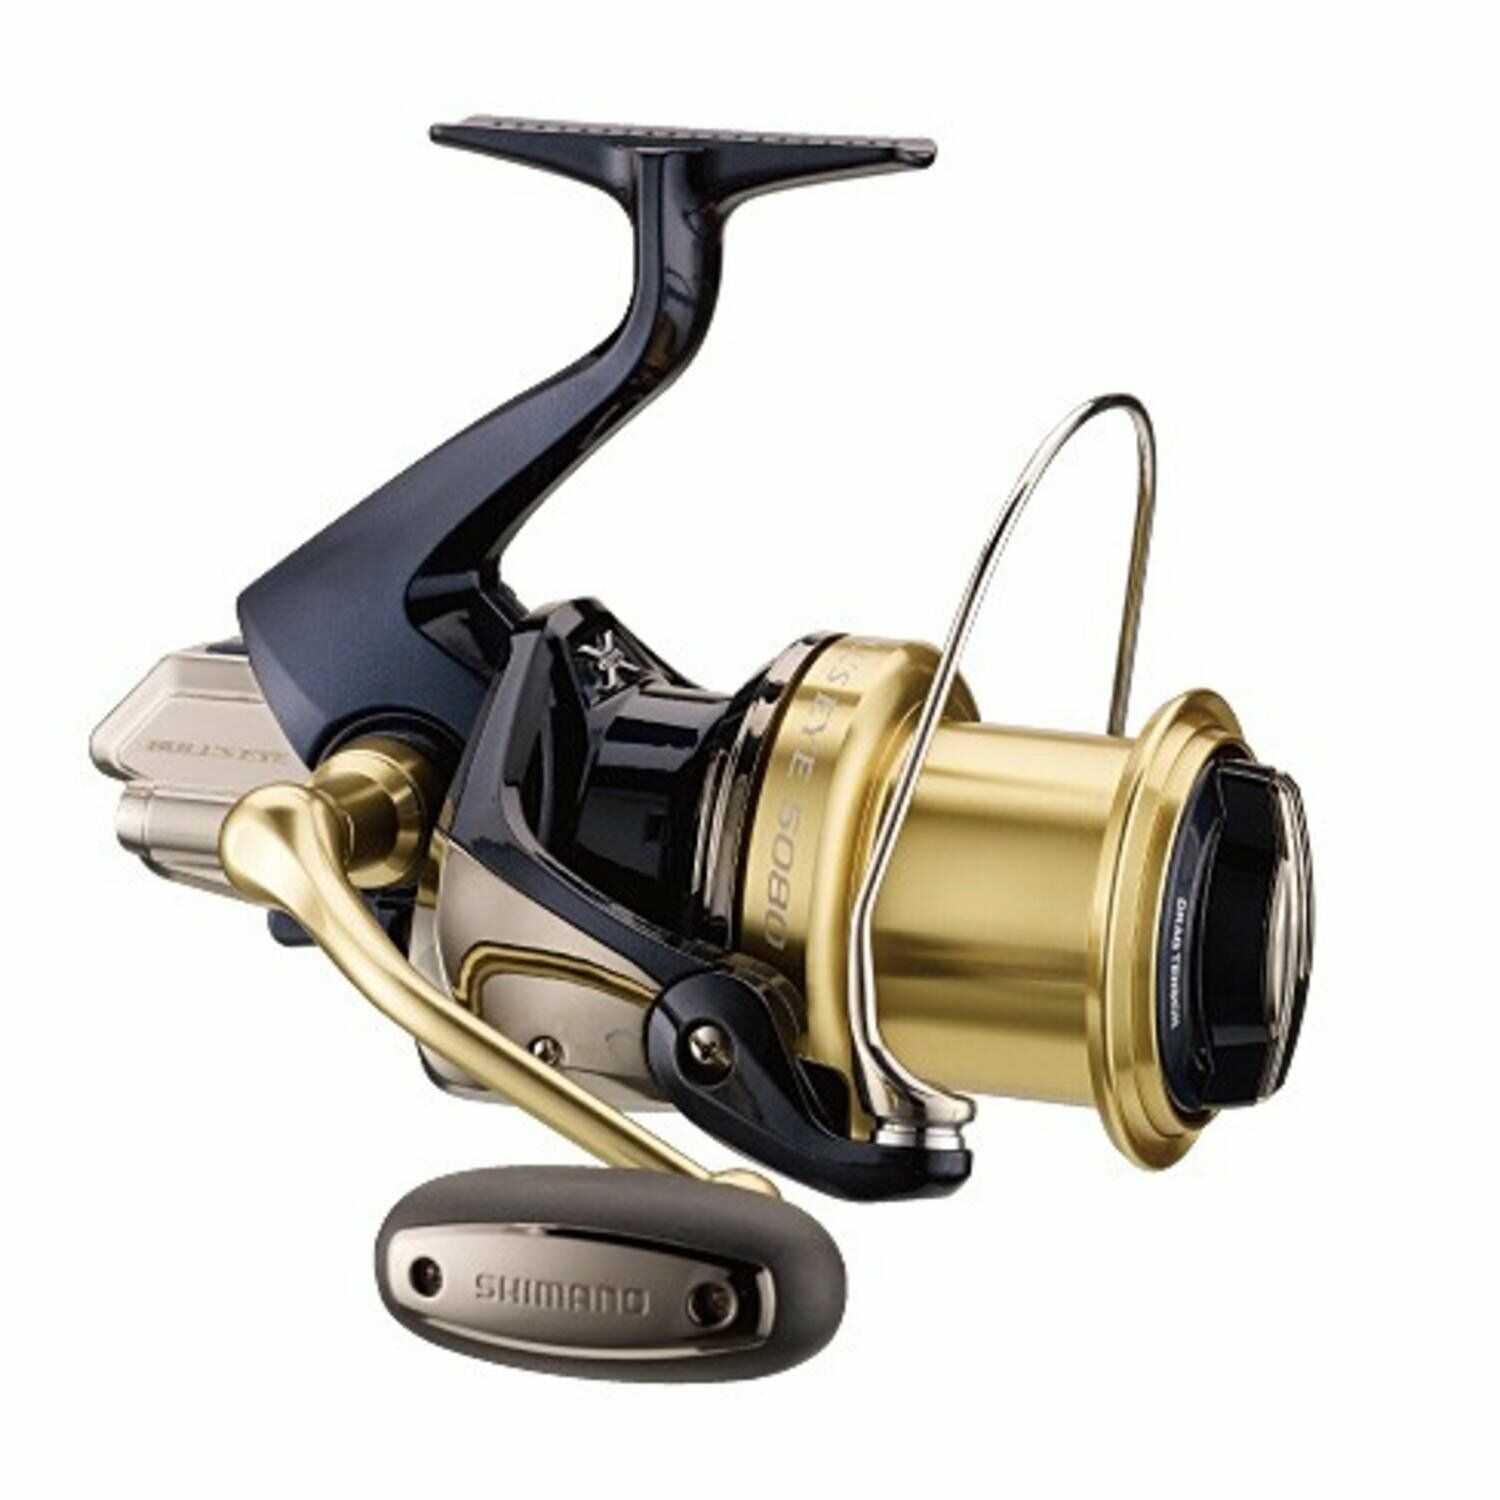 Shimano 14 BULL'S EYE  5080 Spinning Reel New from japan  up to 50% off